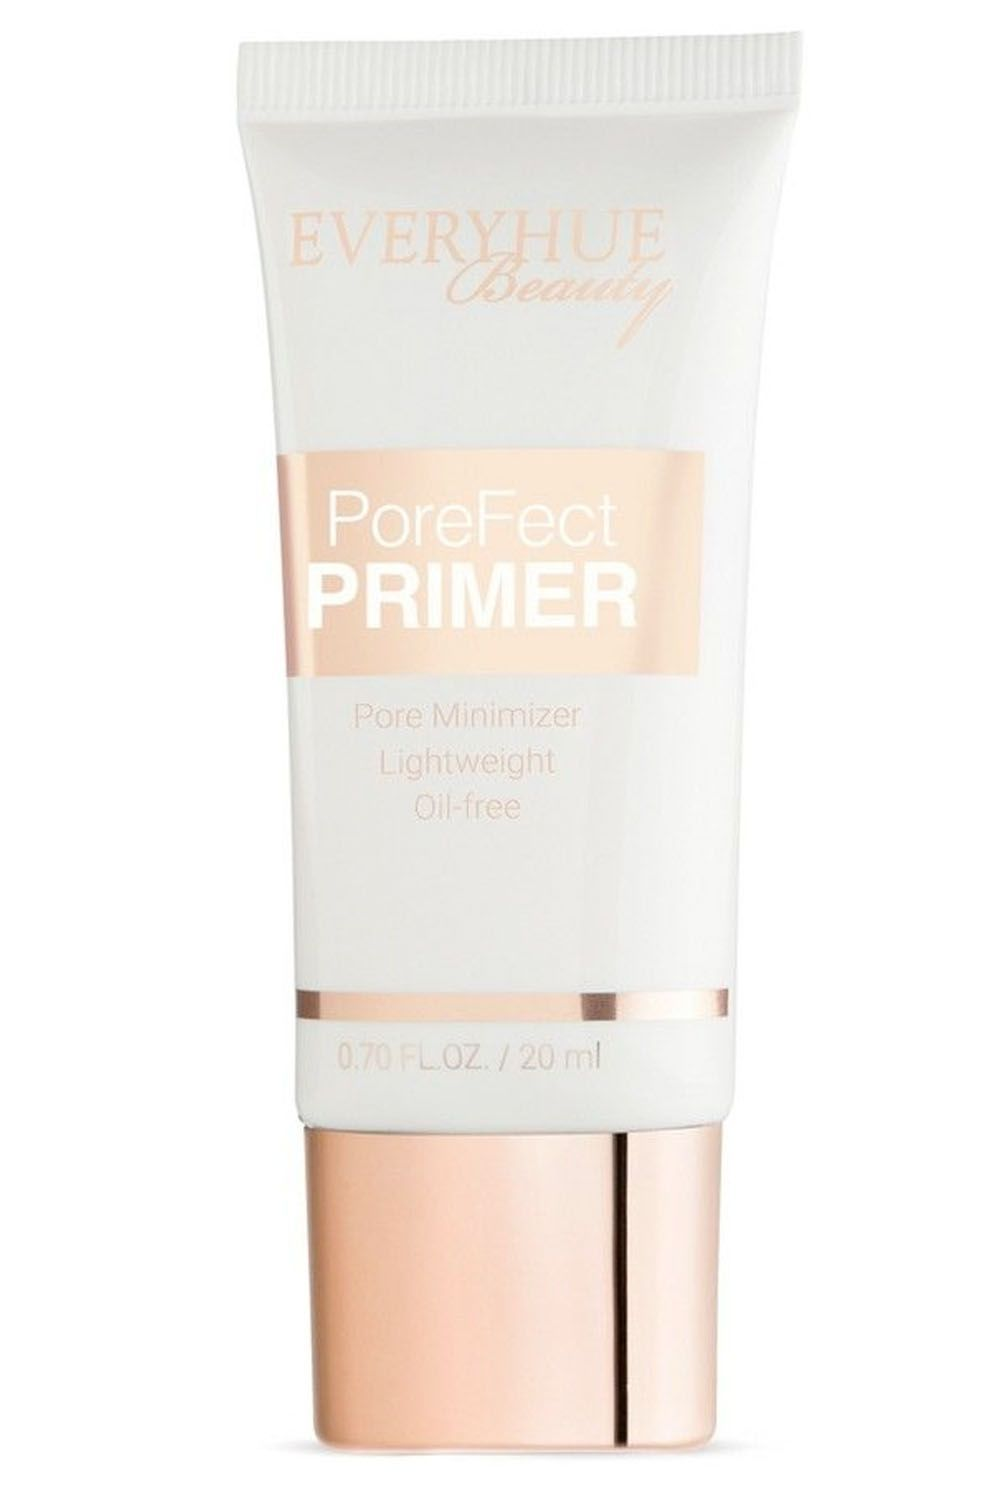 13 Best Drugstore Primers Of 2020 For Every Skin Type And Concern